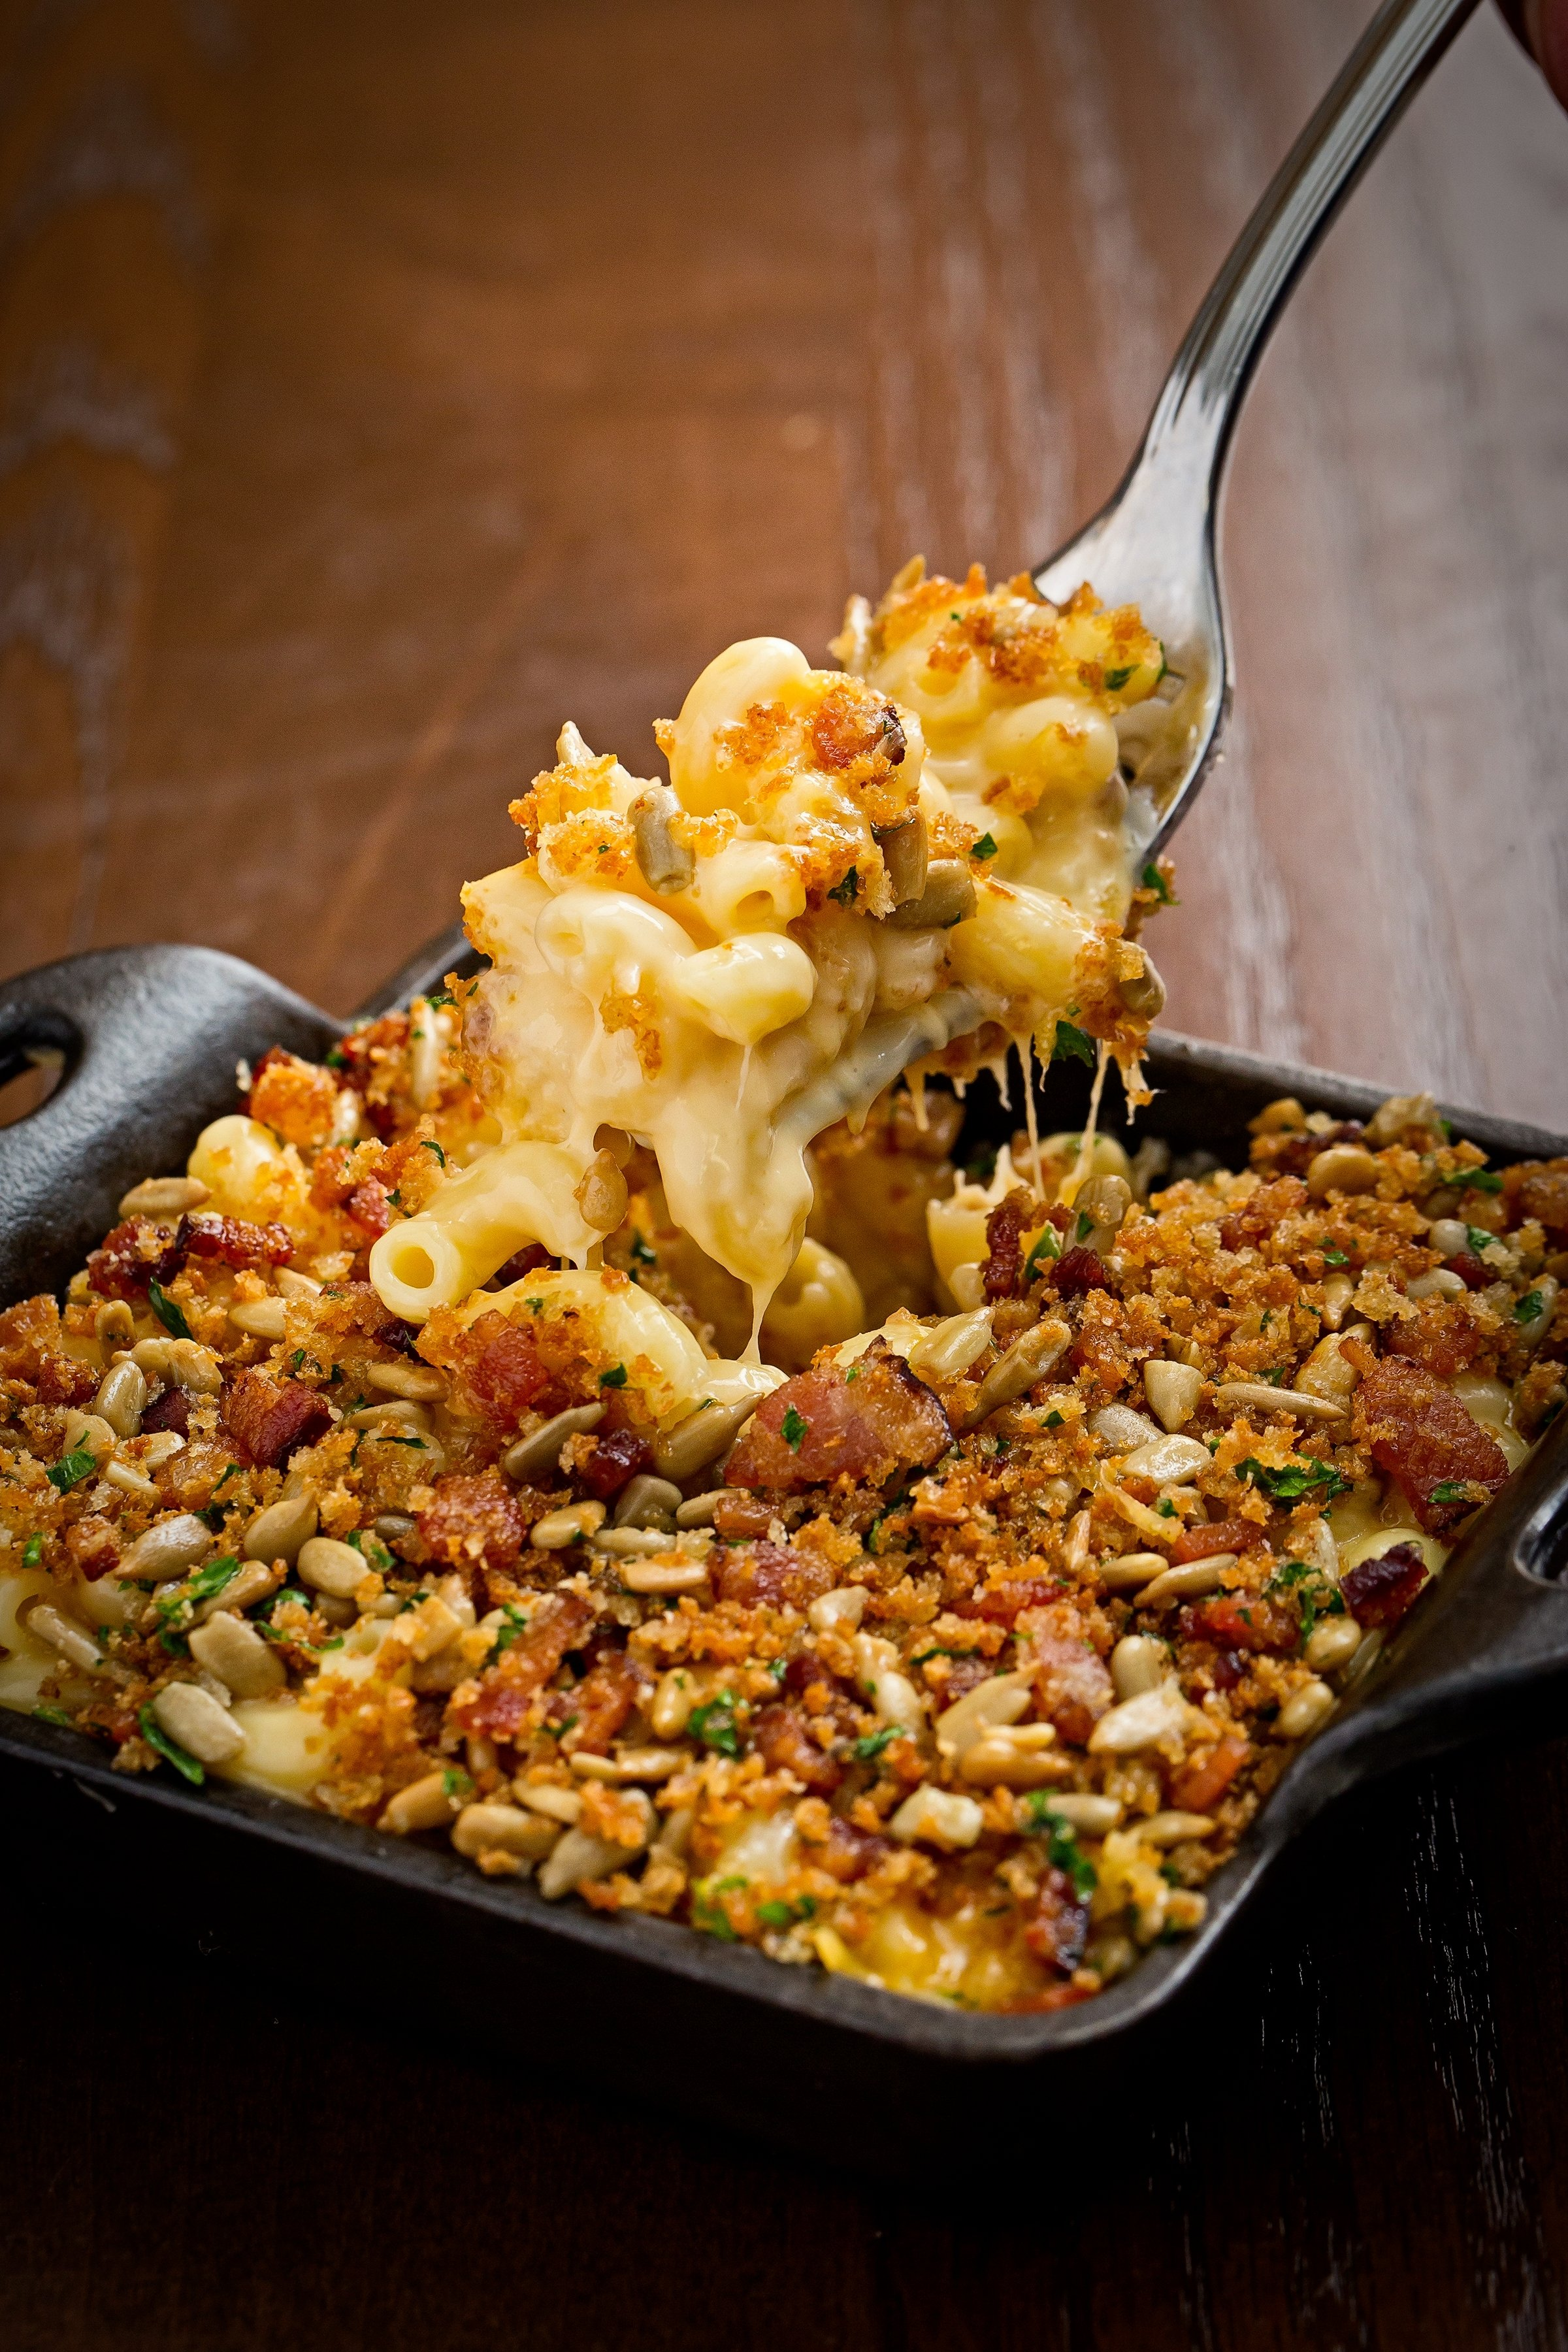 Mac and cheese at Succotash. Photograph by Clarence Butts and Scott Suchman.